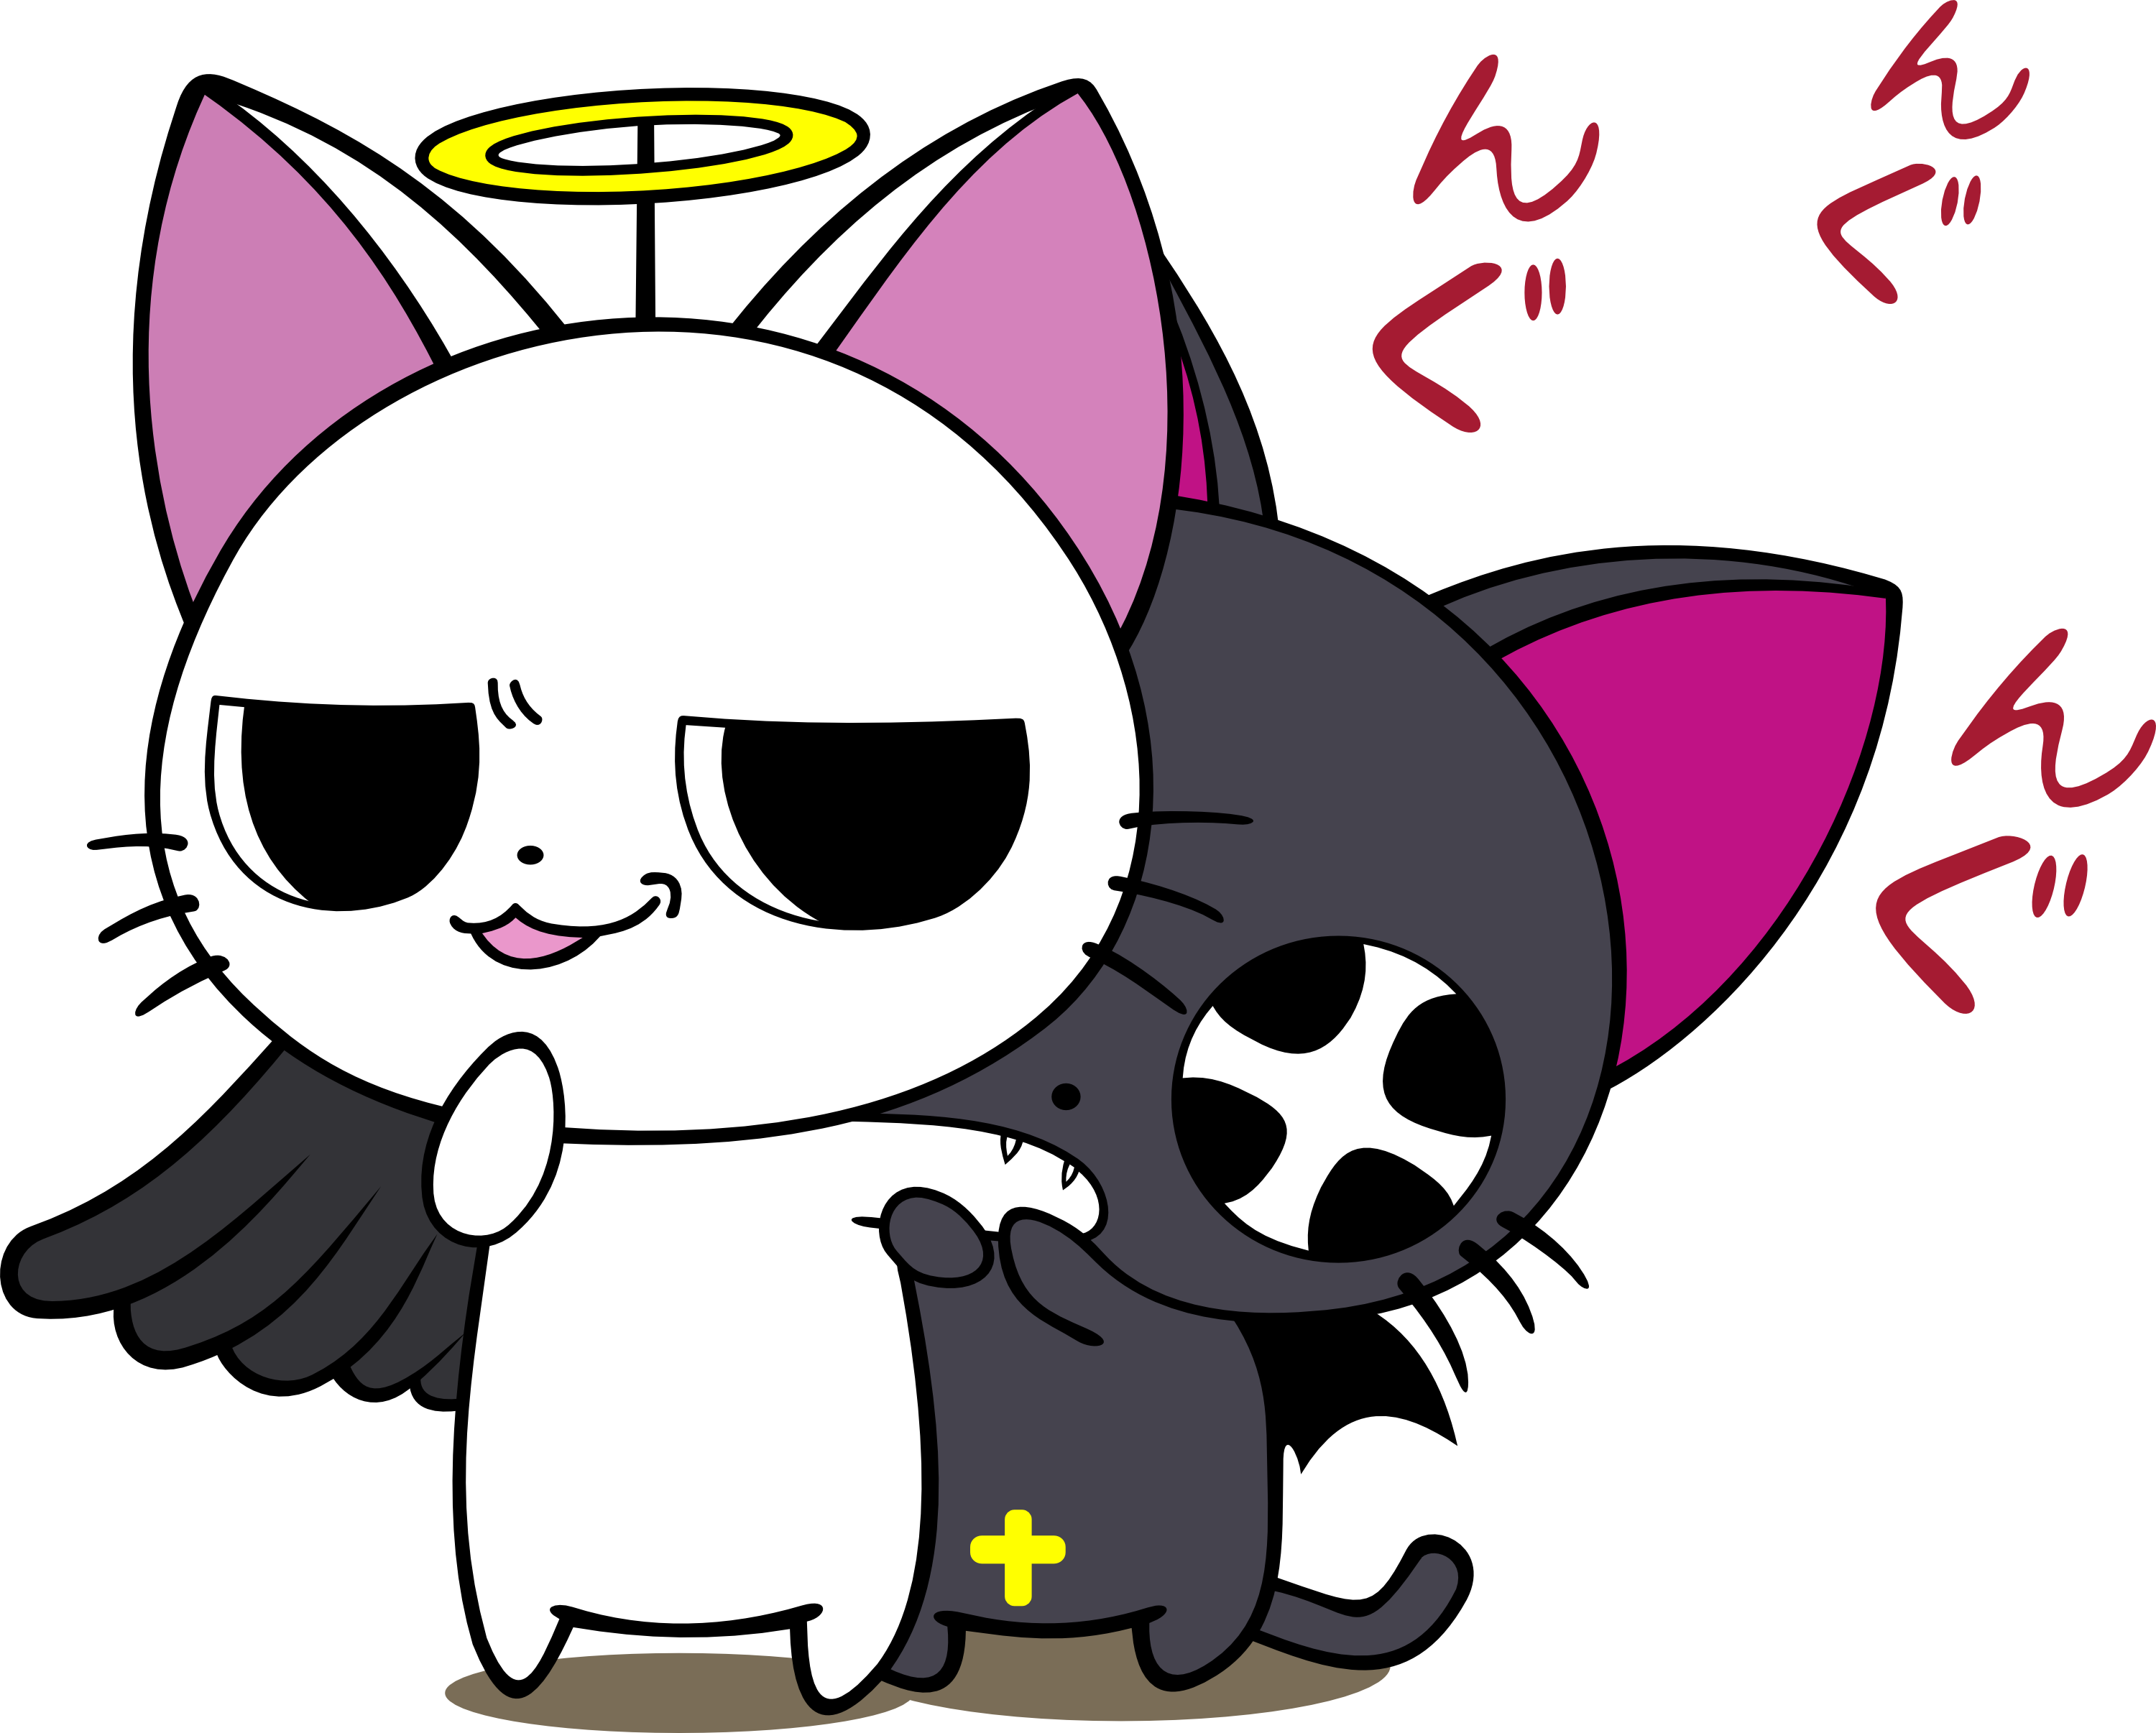 Anime cat png. Image